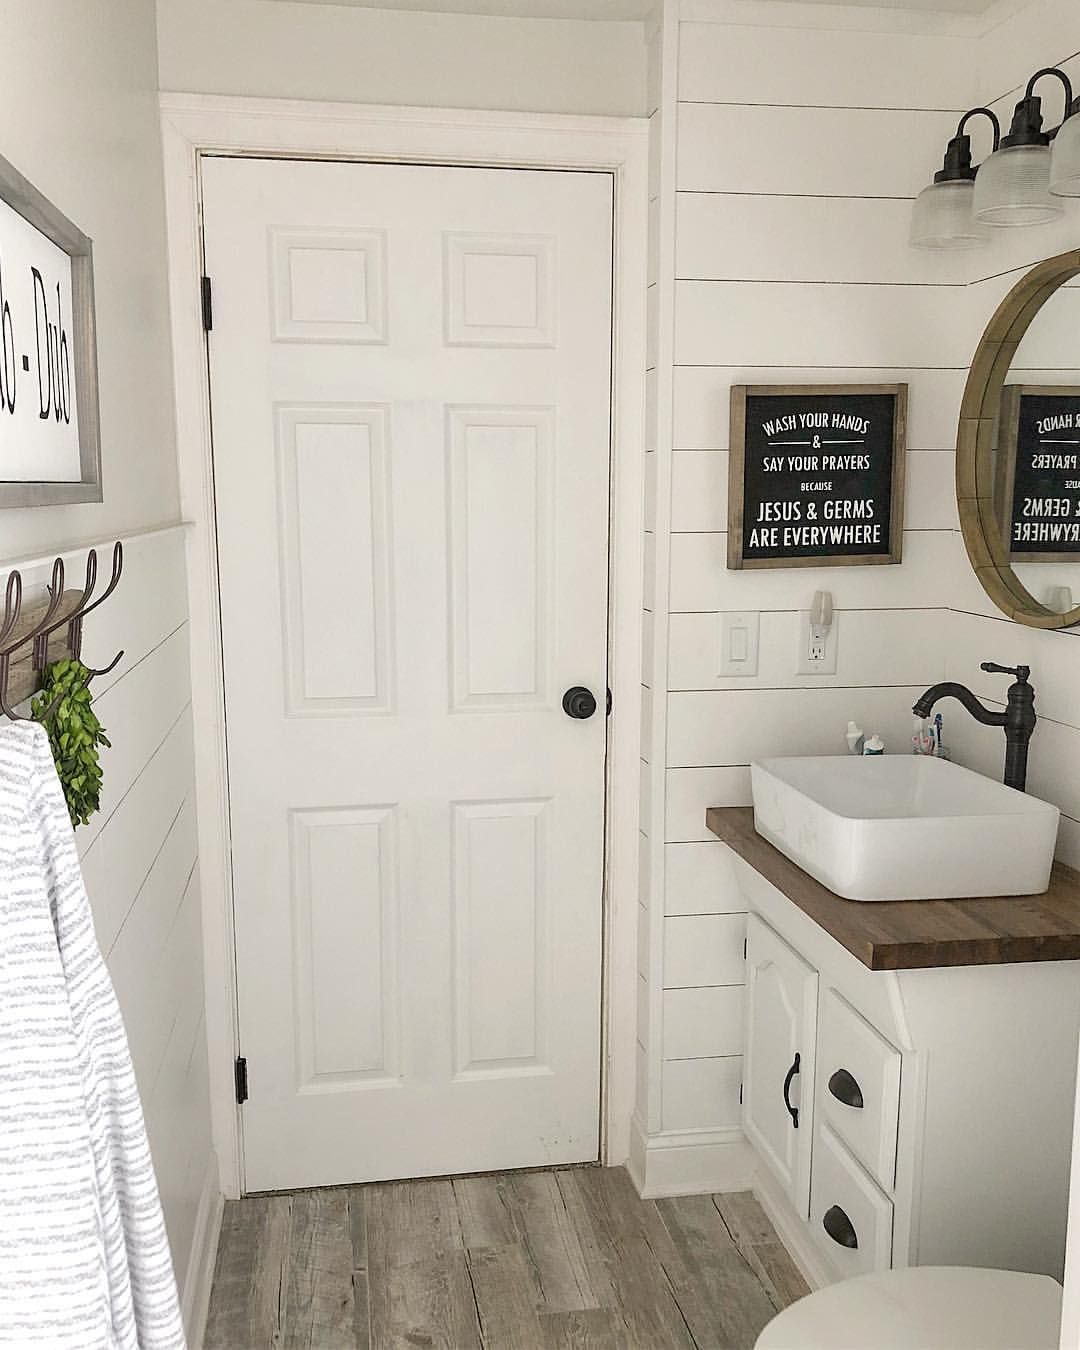 45 Likes 1 Comments Meghan Our Farm Style On Instagram Happy Wednesday Friends Enjoying The D Bathrooms Remodel Bathroom Remodel Master Small Bathroom